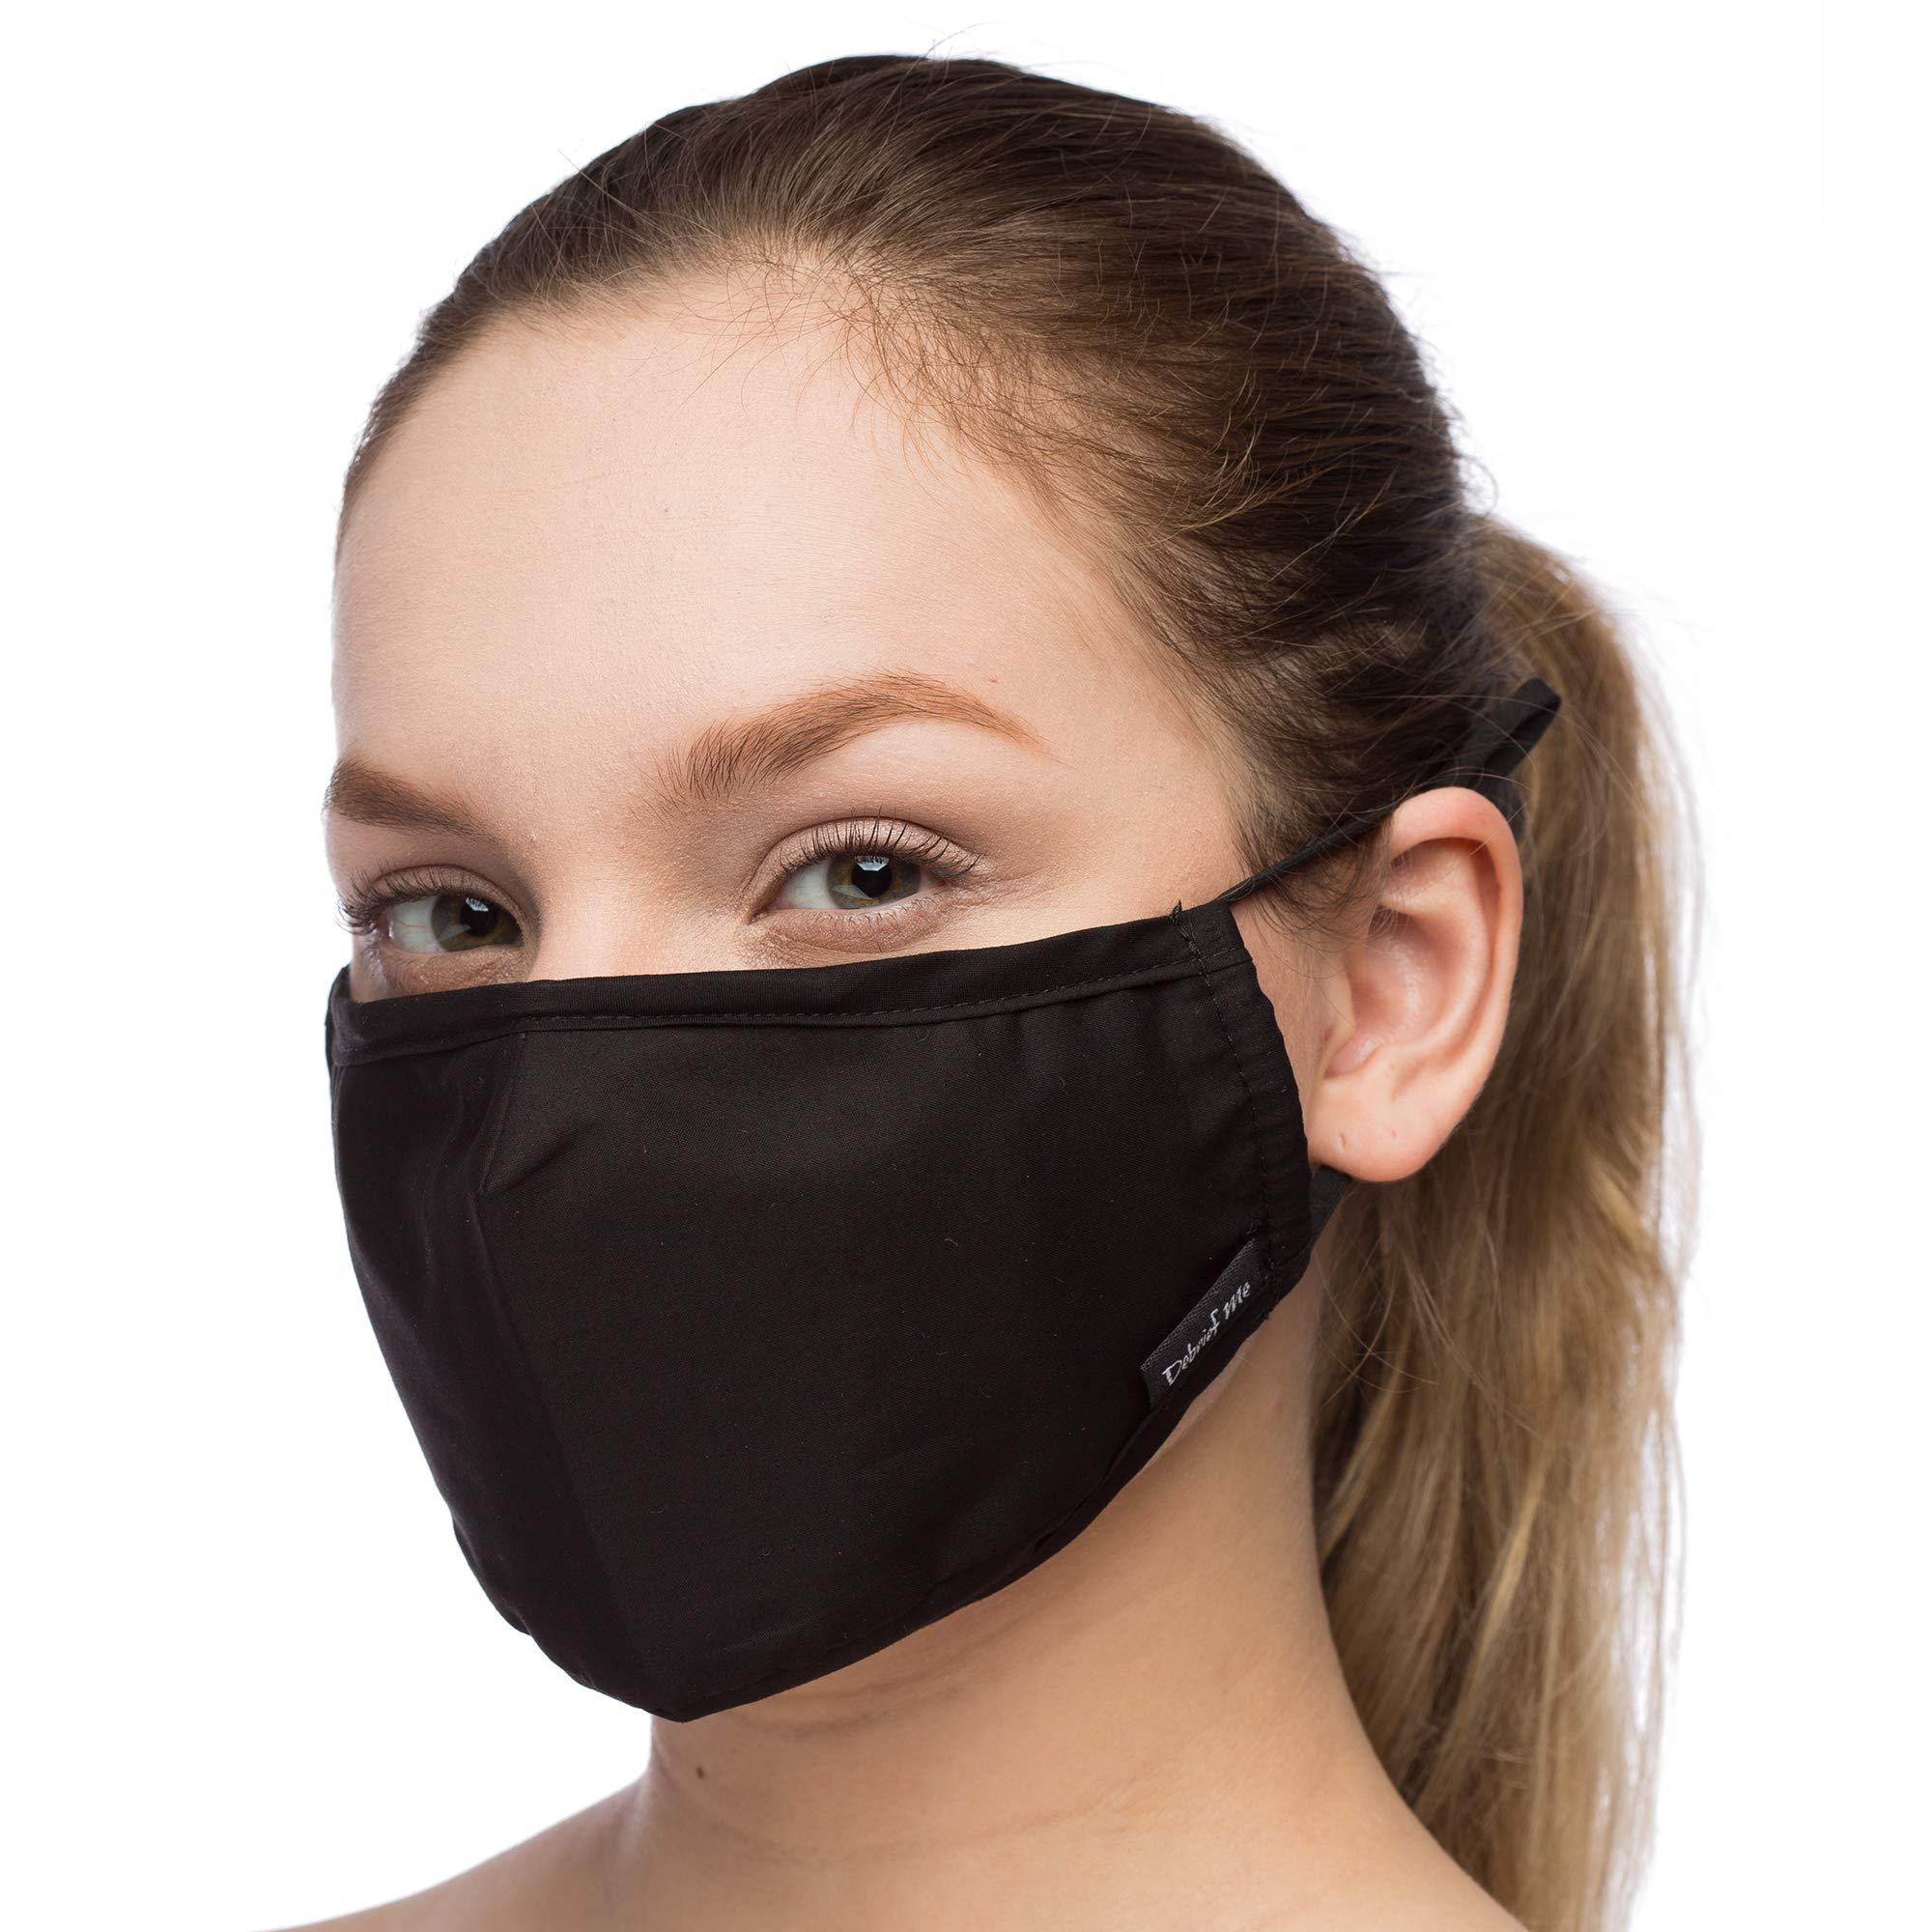 Anti Dust Face Mouth Cover Mask Respirator - Dustproof Anti-bacterial Washable - Reusable masks Respirator Comfy - Cotton Germ Protective Breath Healthy Safety Warm Windproof mask (Black)